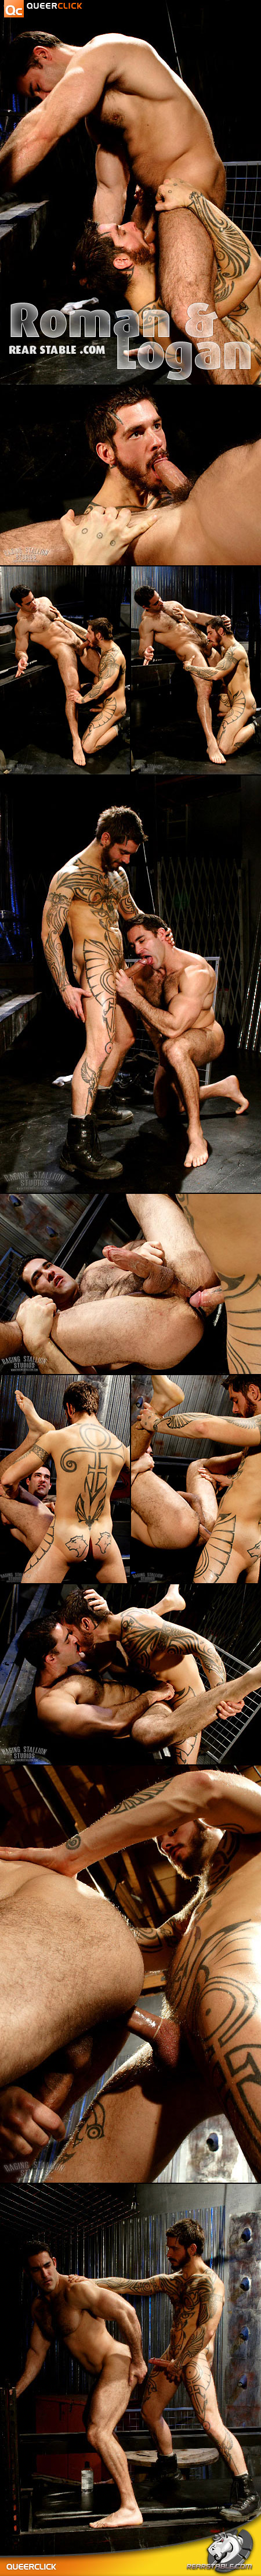 Roman Ragazzi and Logan McCree at RearStable.com